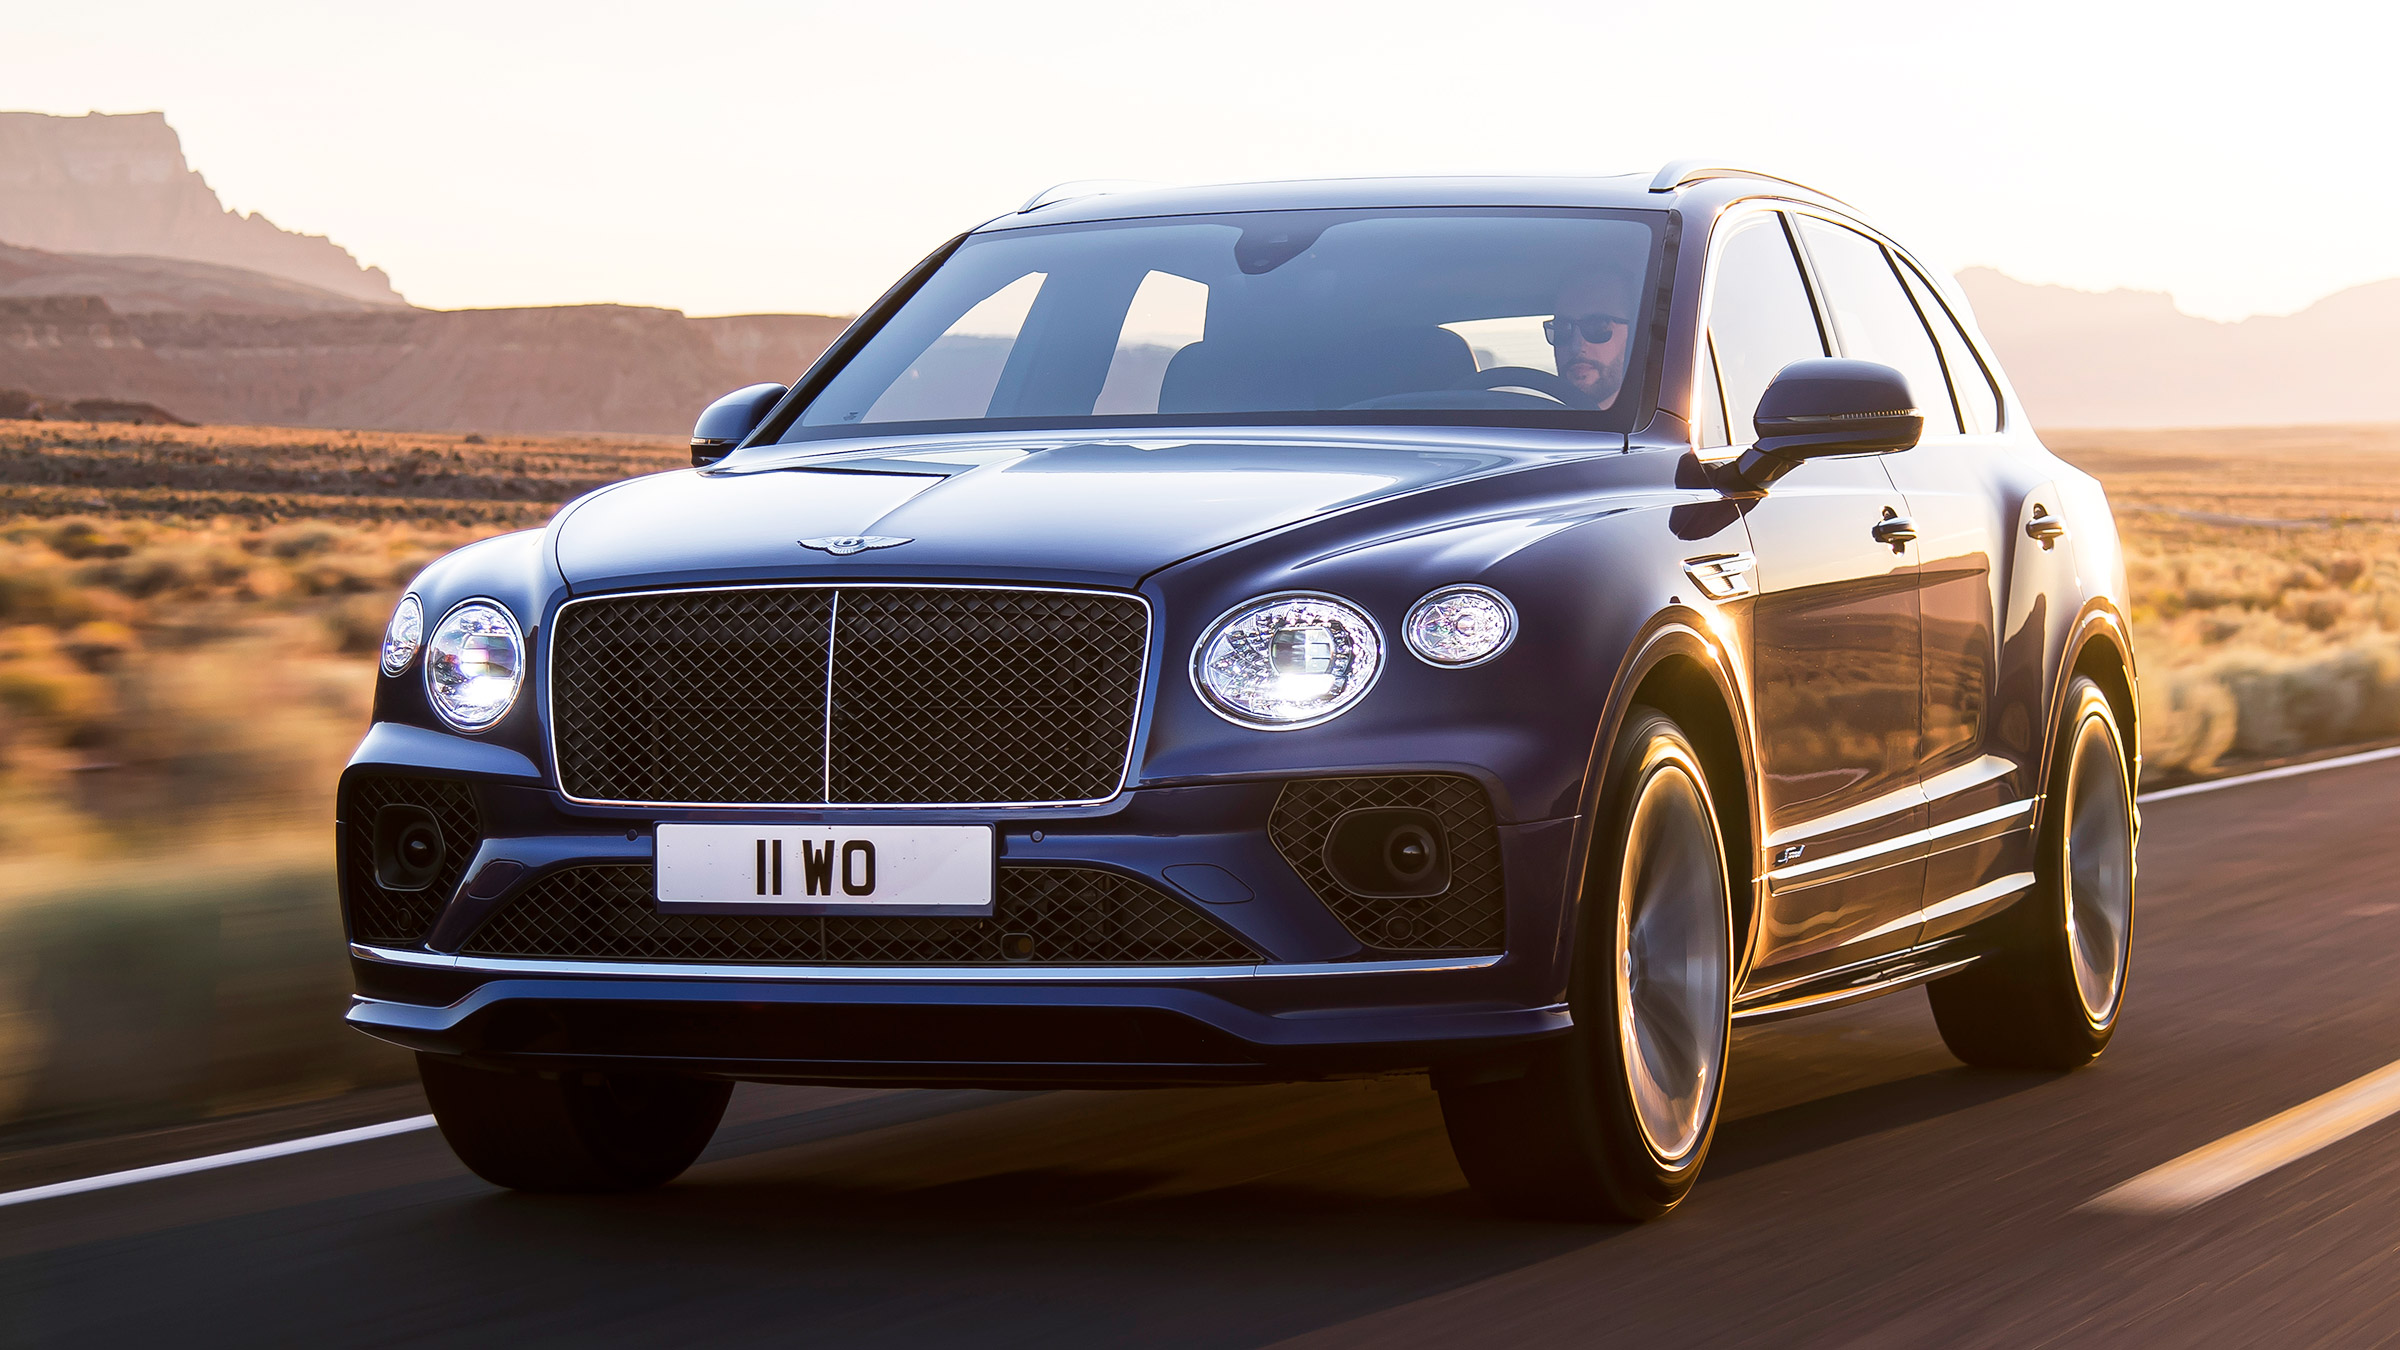 190mph Bentley Bentayga Speed Suv Updated For 2020 Auto Express